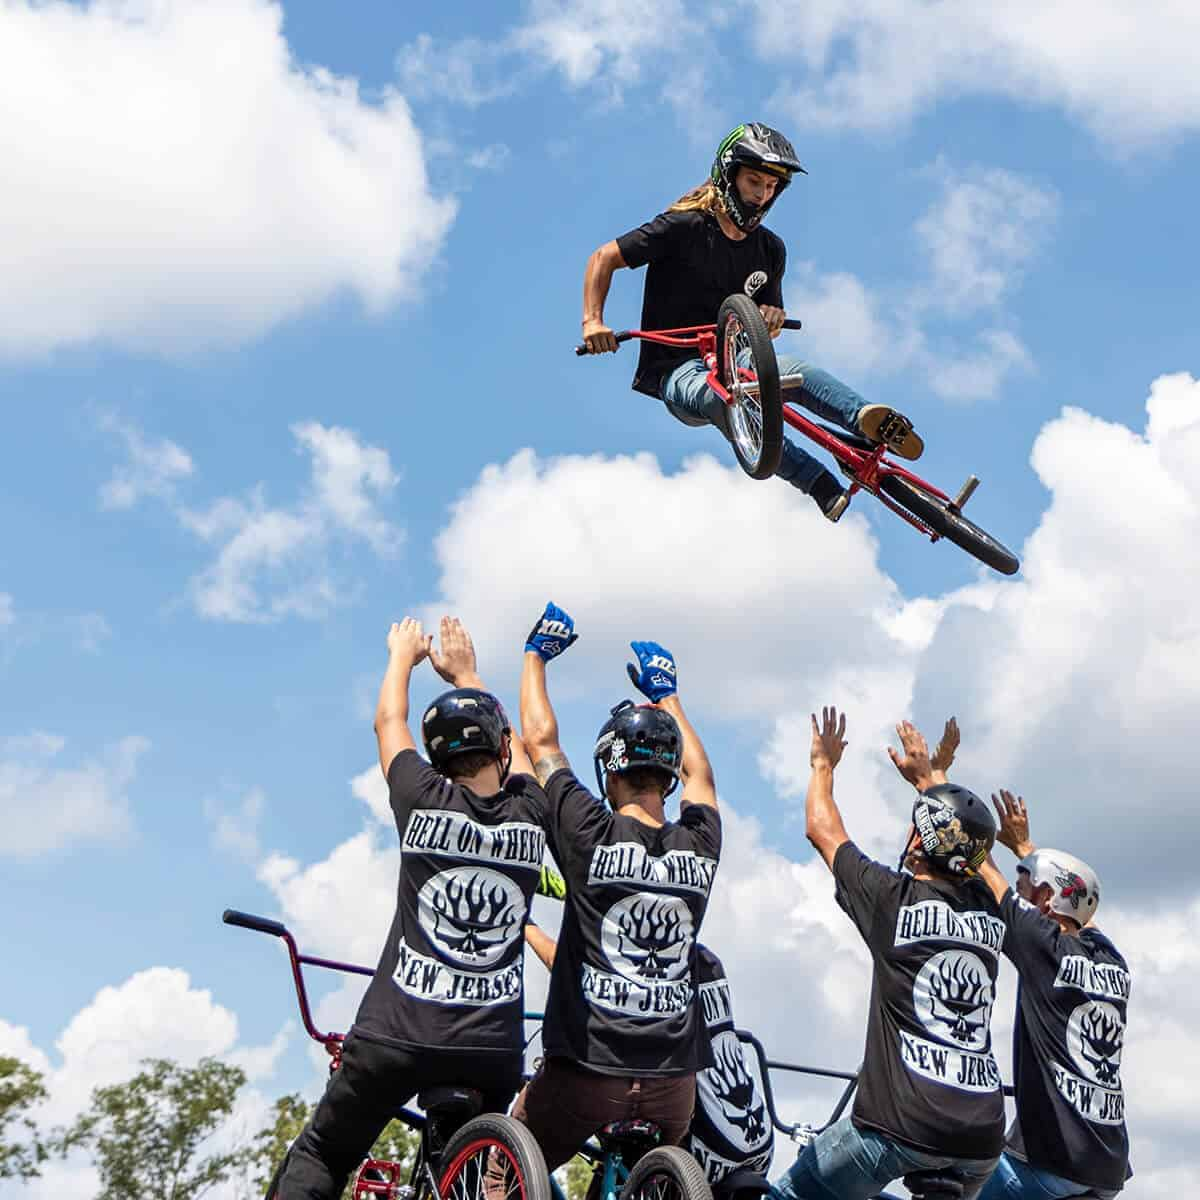 BMX rider leaping over other BMX riders at special event